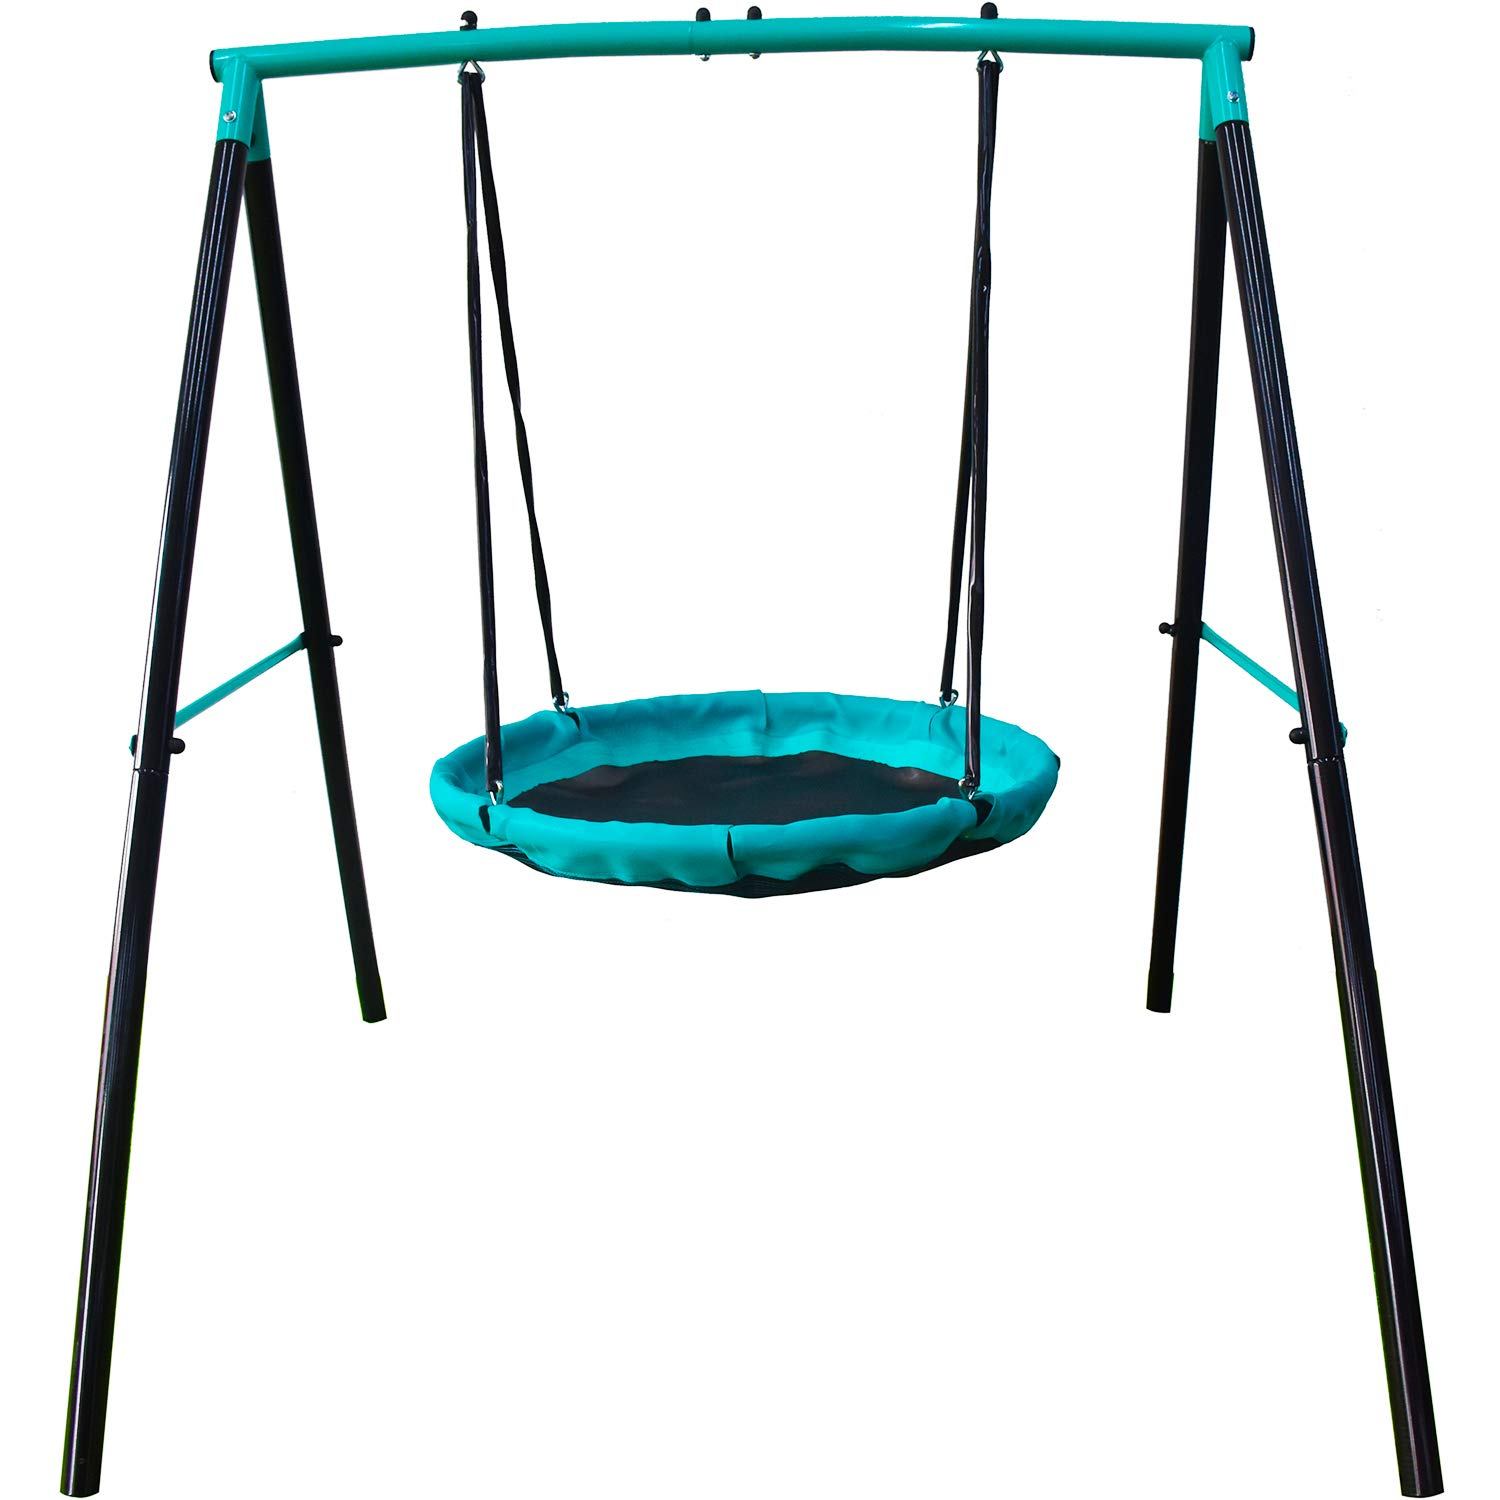 Jump Power UFO Swing Set for 1 or 2 Children, Kids and Toddlers For Fun in Your Backyard ''ASTM Safety Approved'' by JUMP POWER